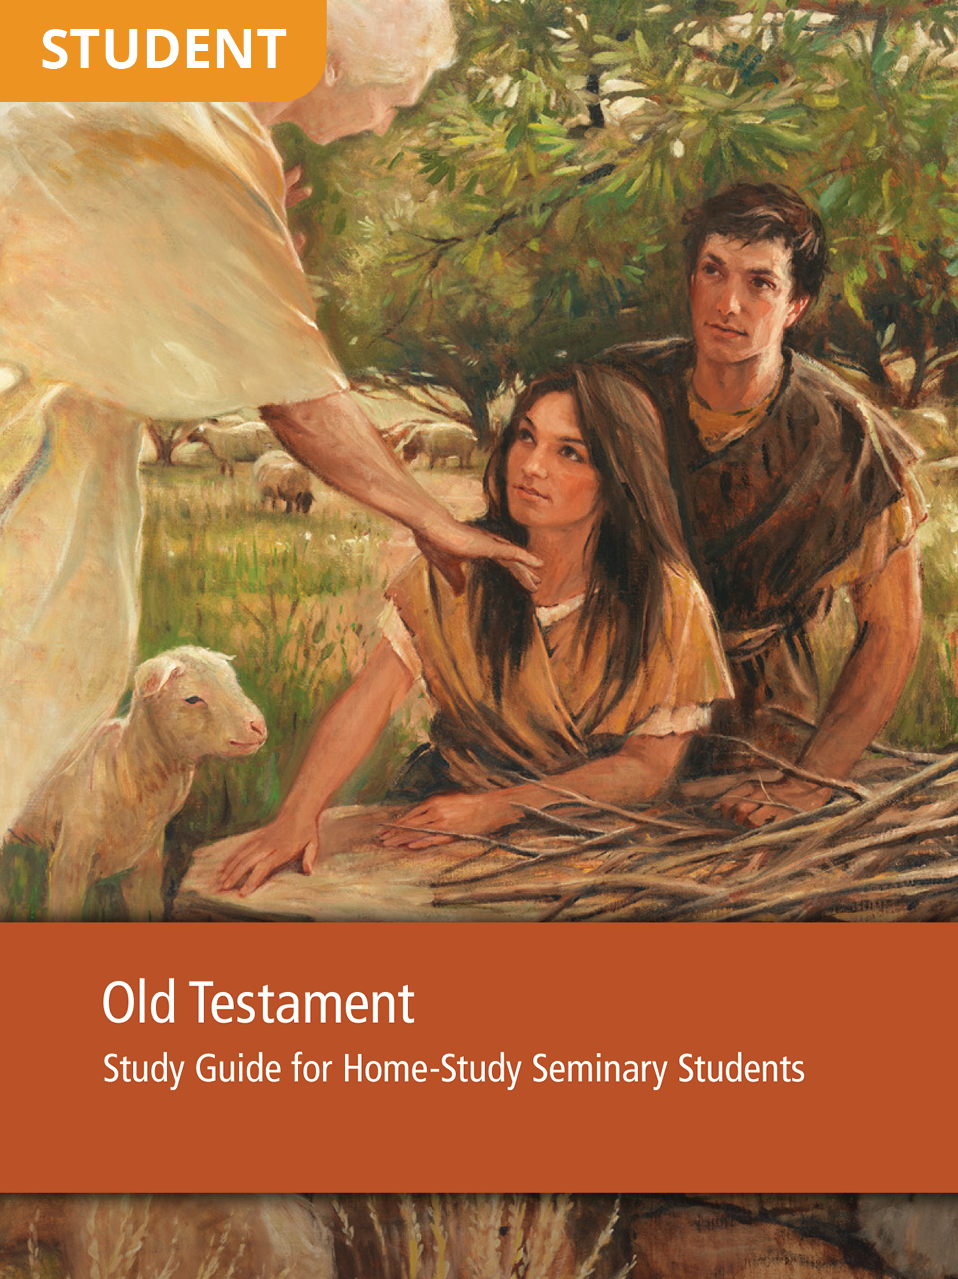 Old Testament Study Guide for Home-Study Seminary Students